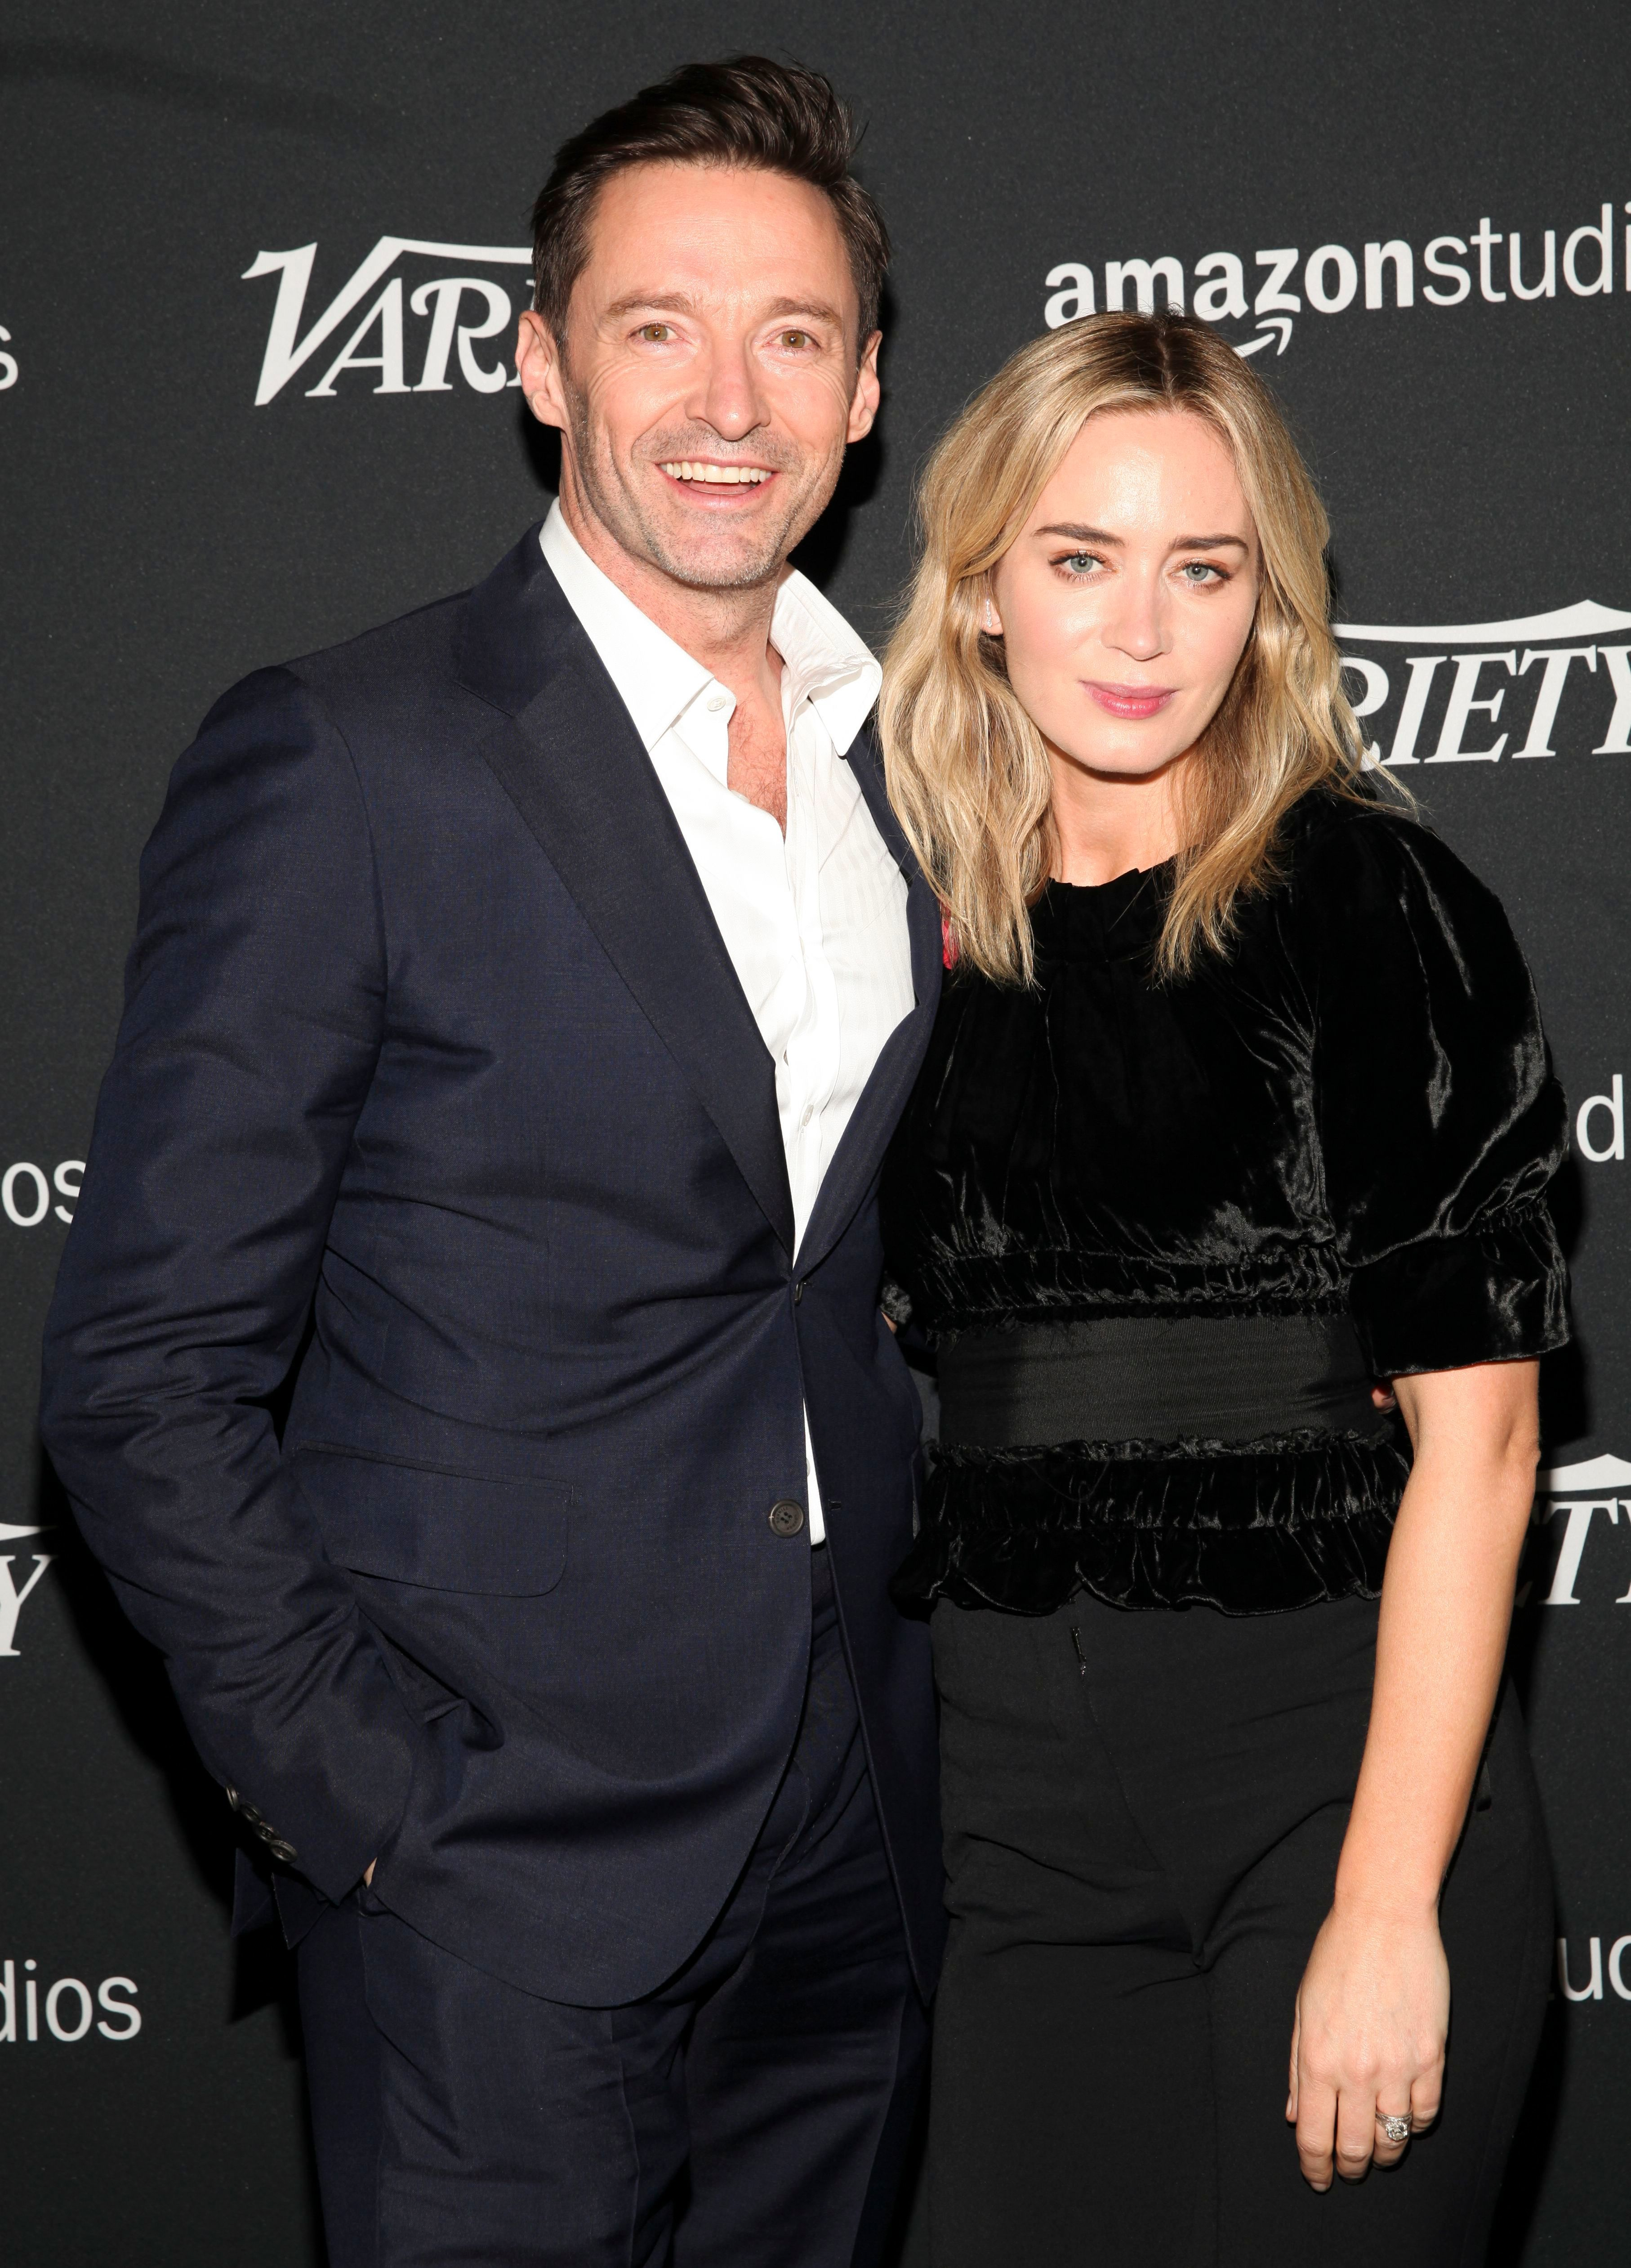 Hugh Jackman and Emily Blunt attend the Variety Actors on Actors event in Los Angeles on Nov. 17, 2018.